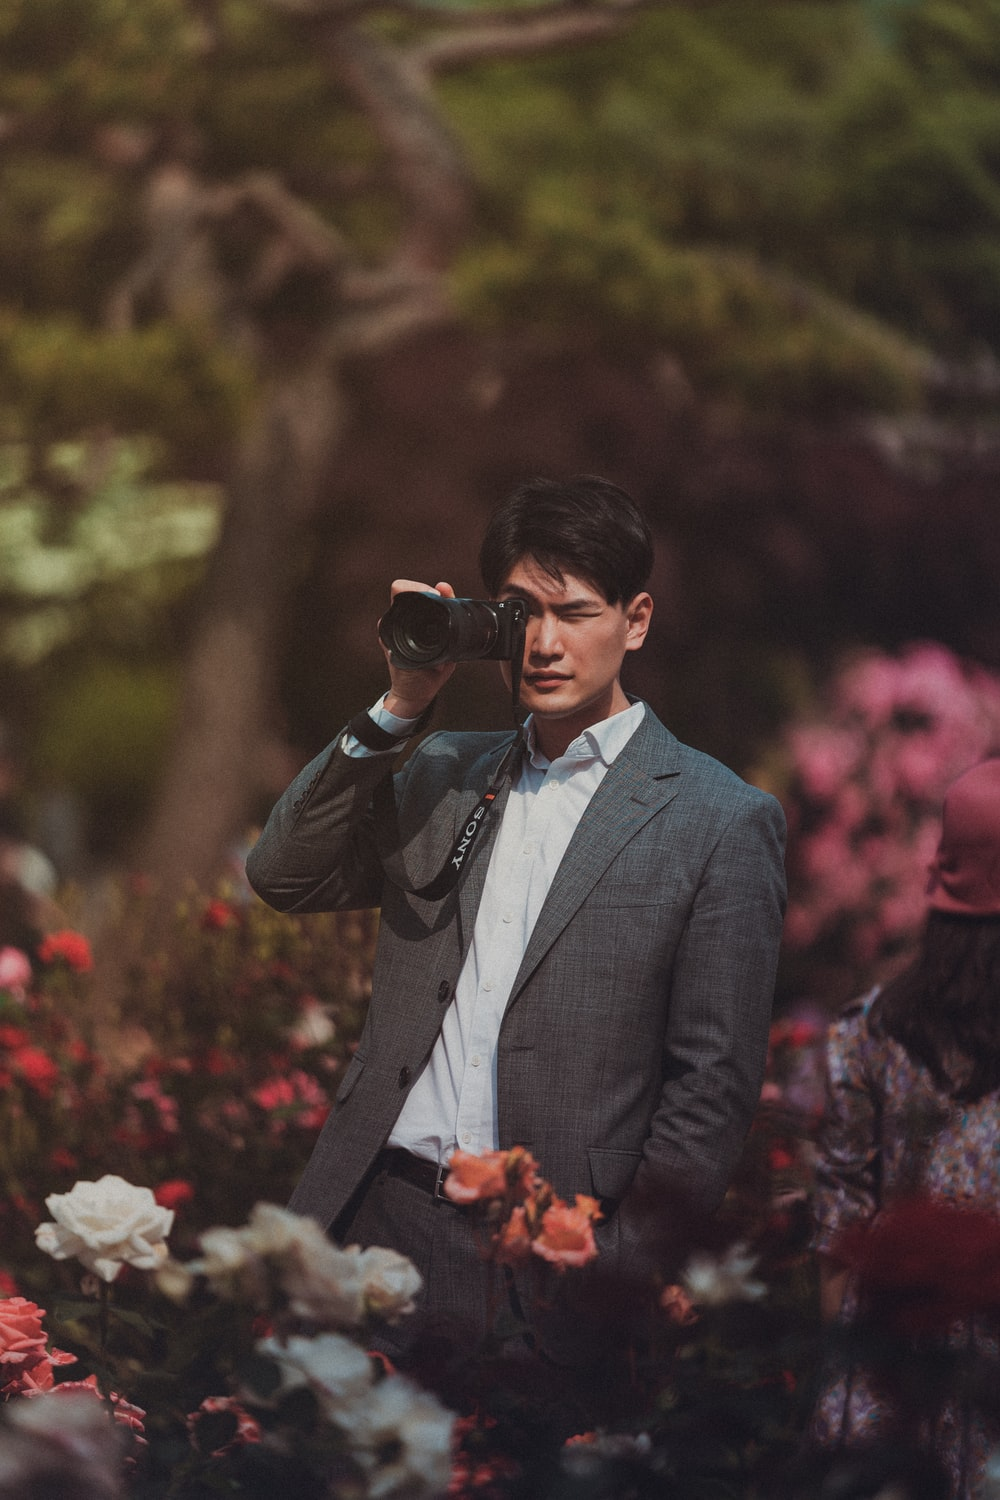 man standing and using DSLR camera in the middle of flower garden